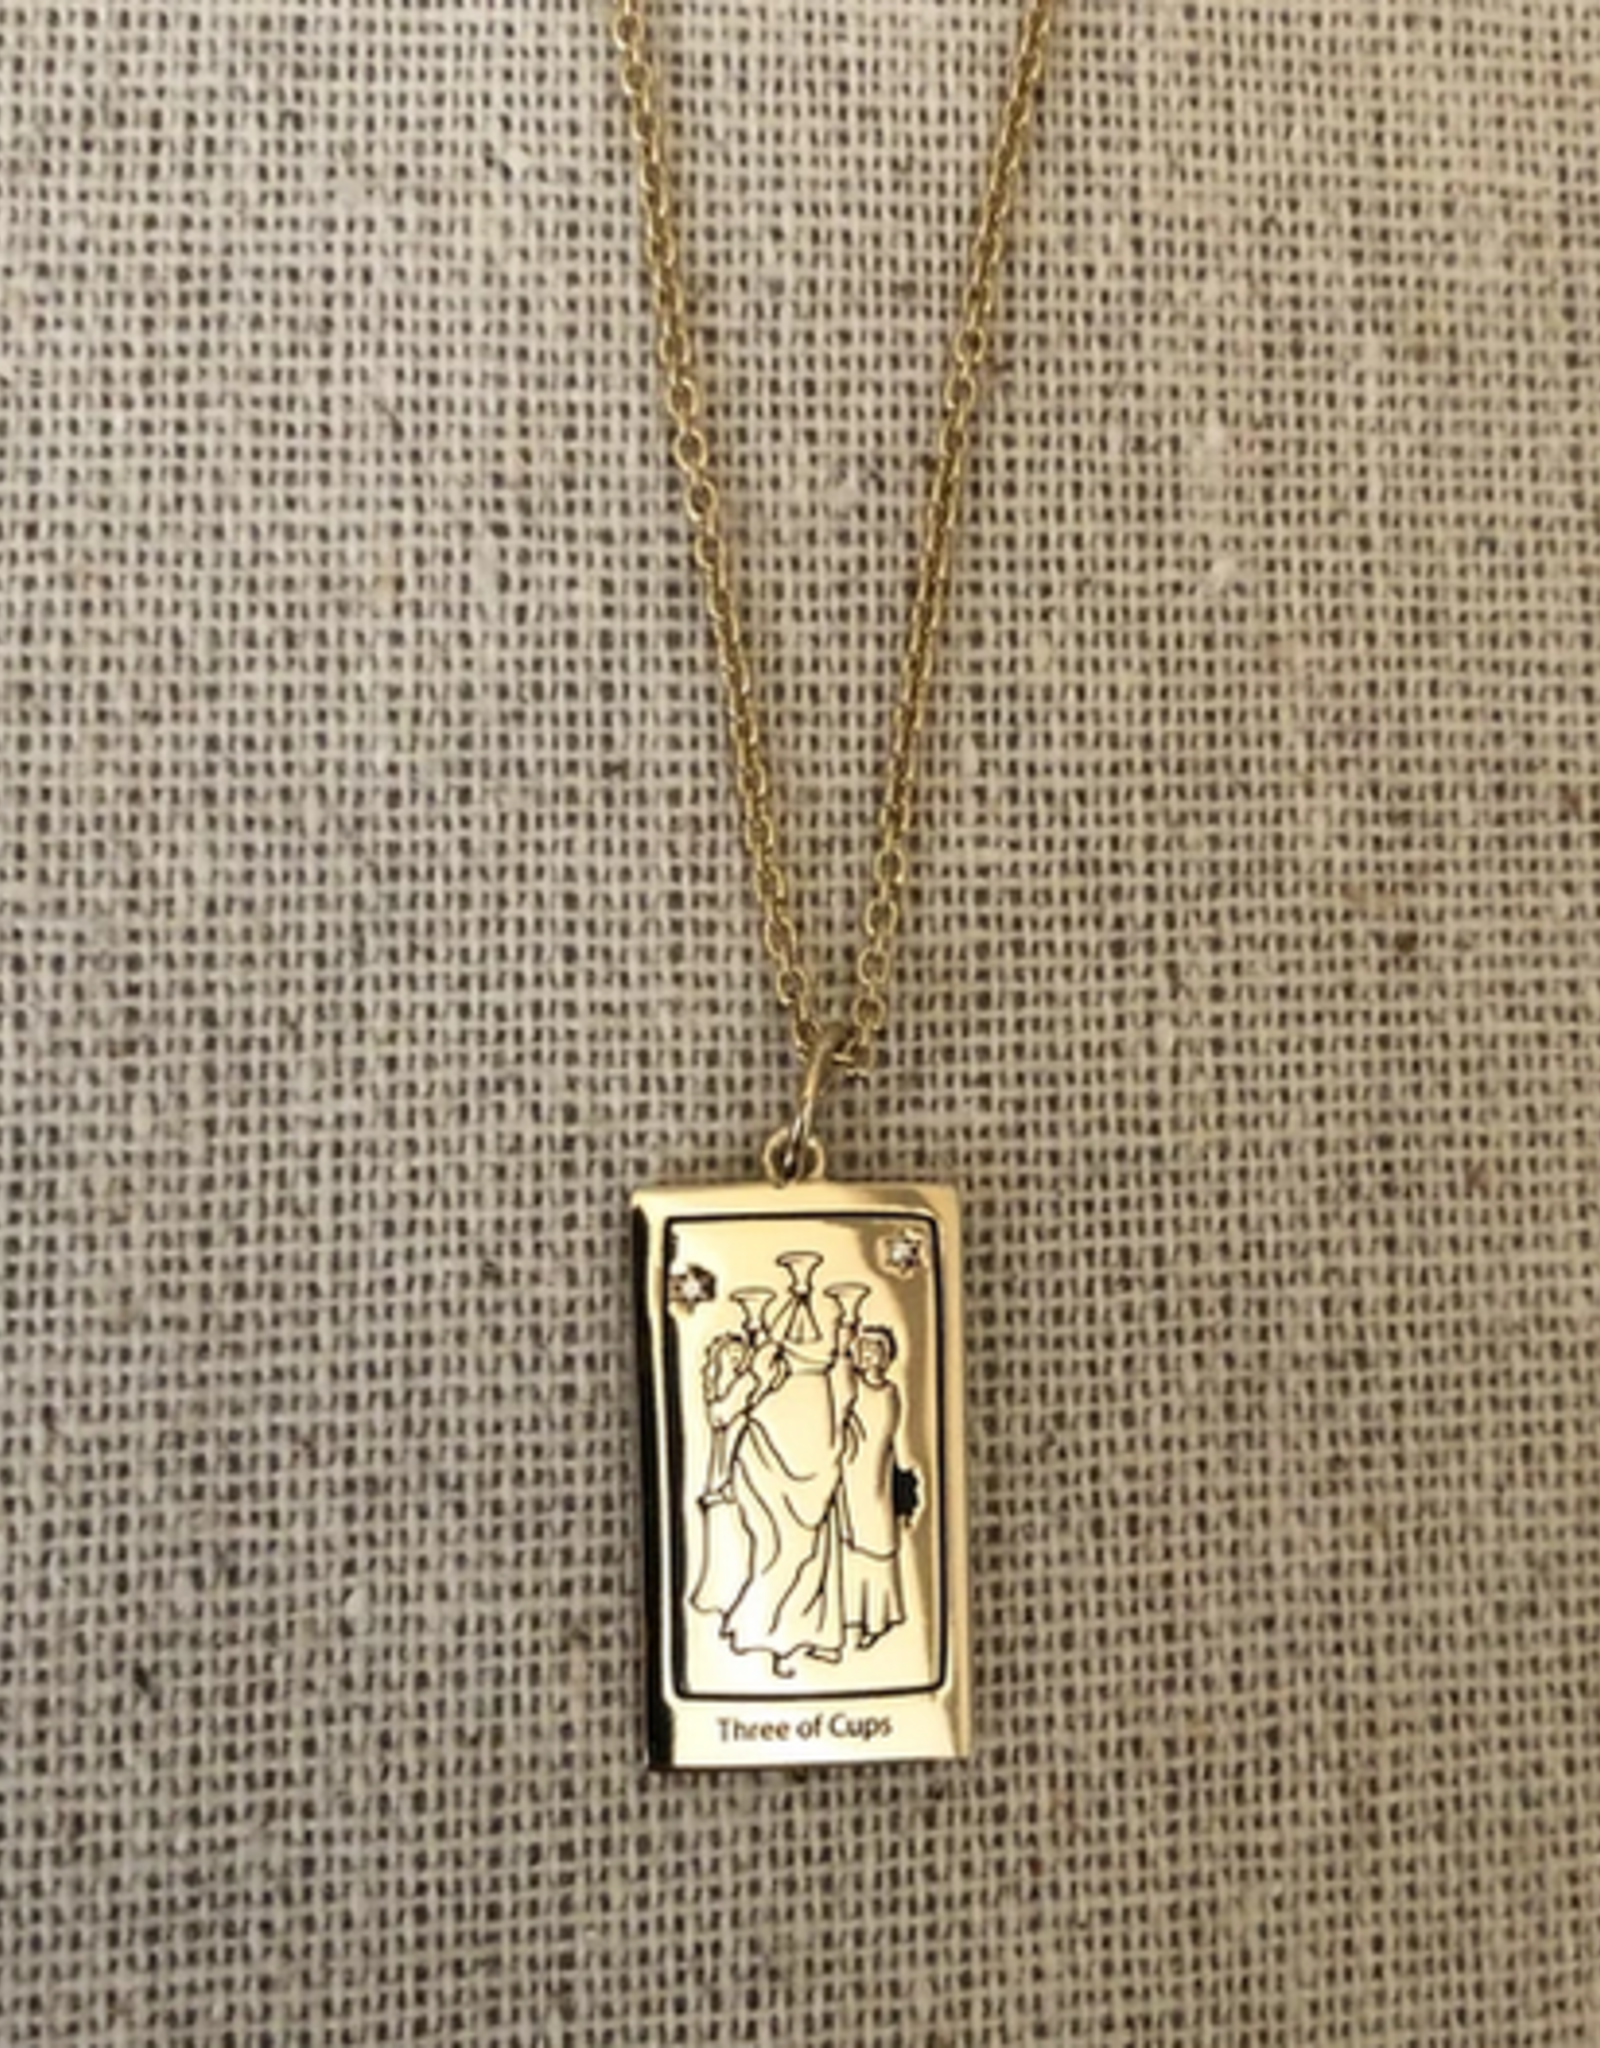 Memento Mori Designs NYC The Three of Cups Tarot Charm with Chain